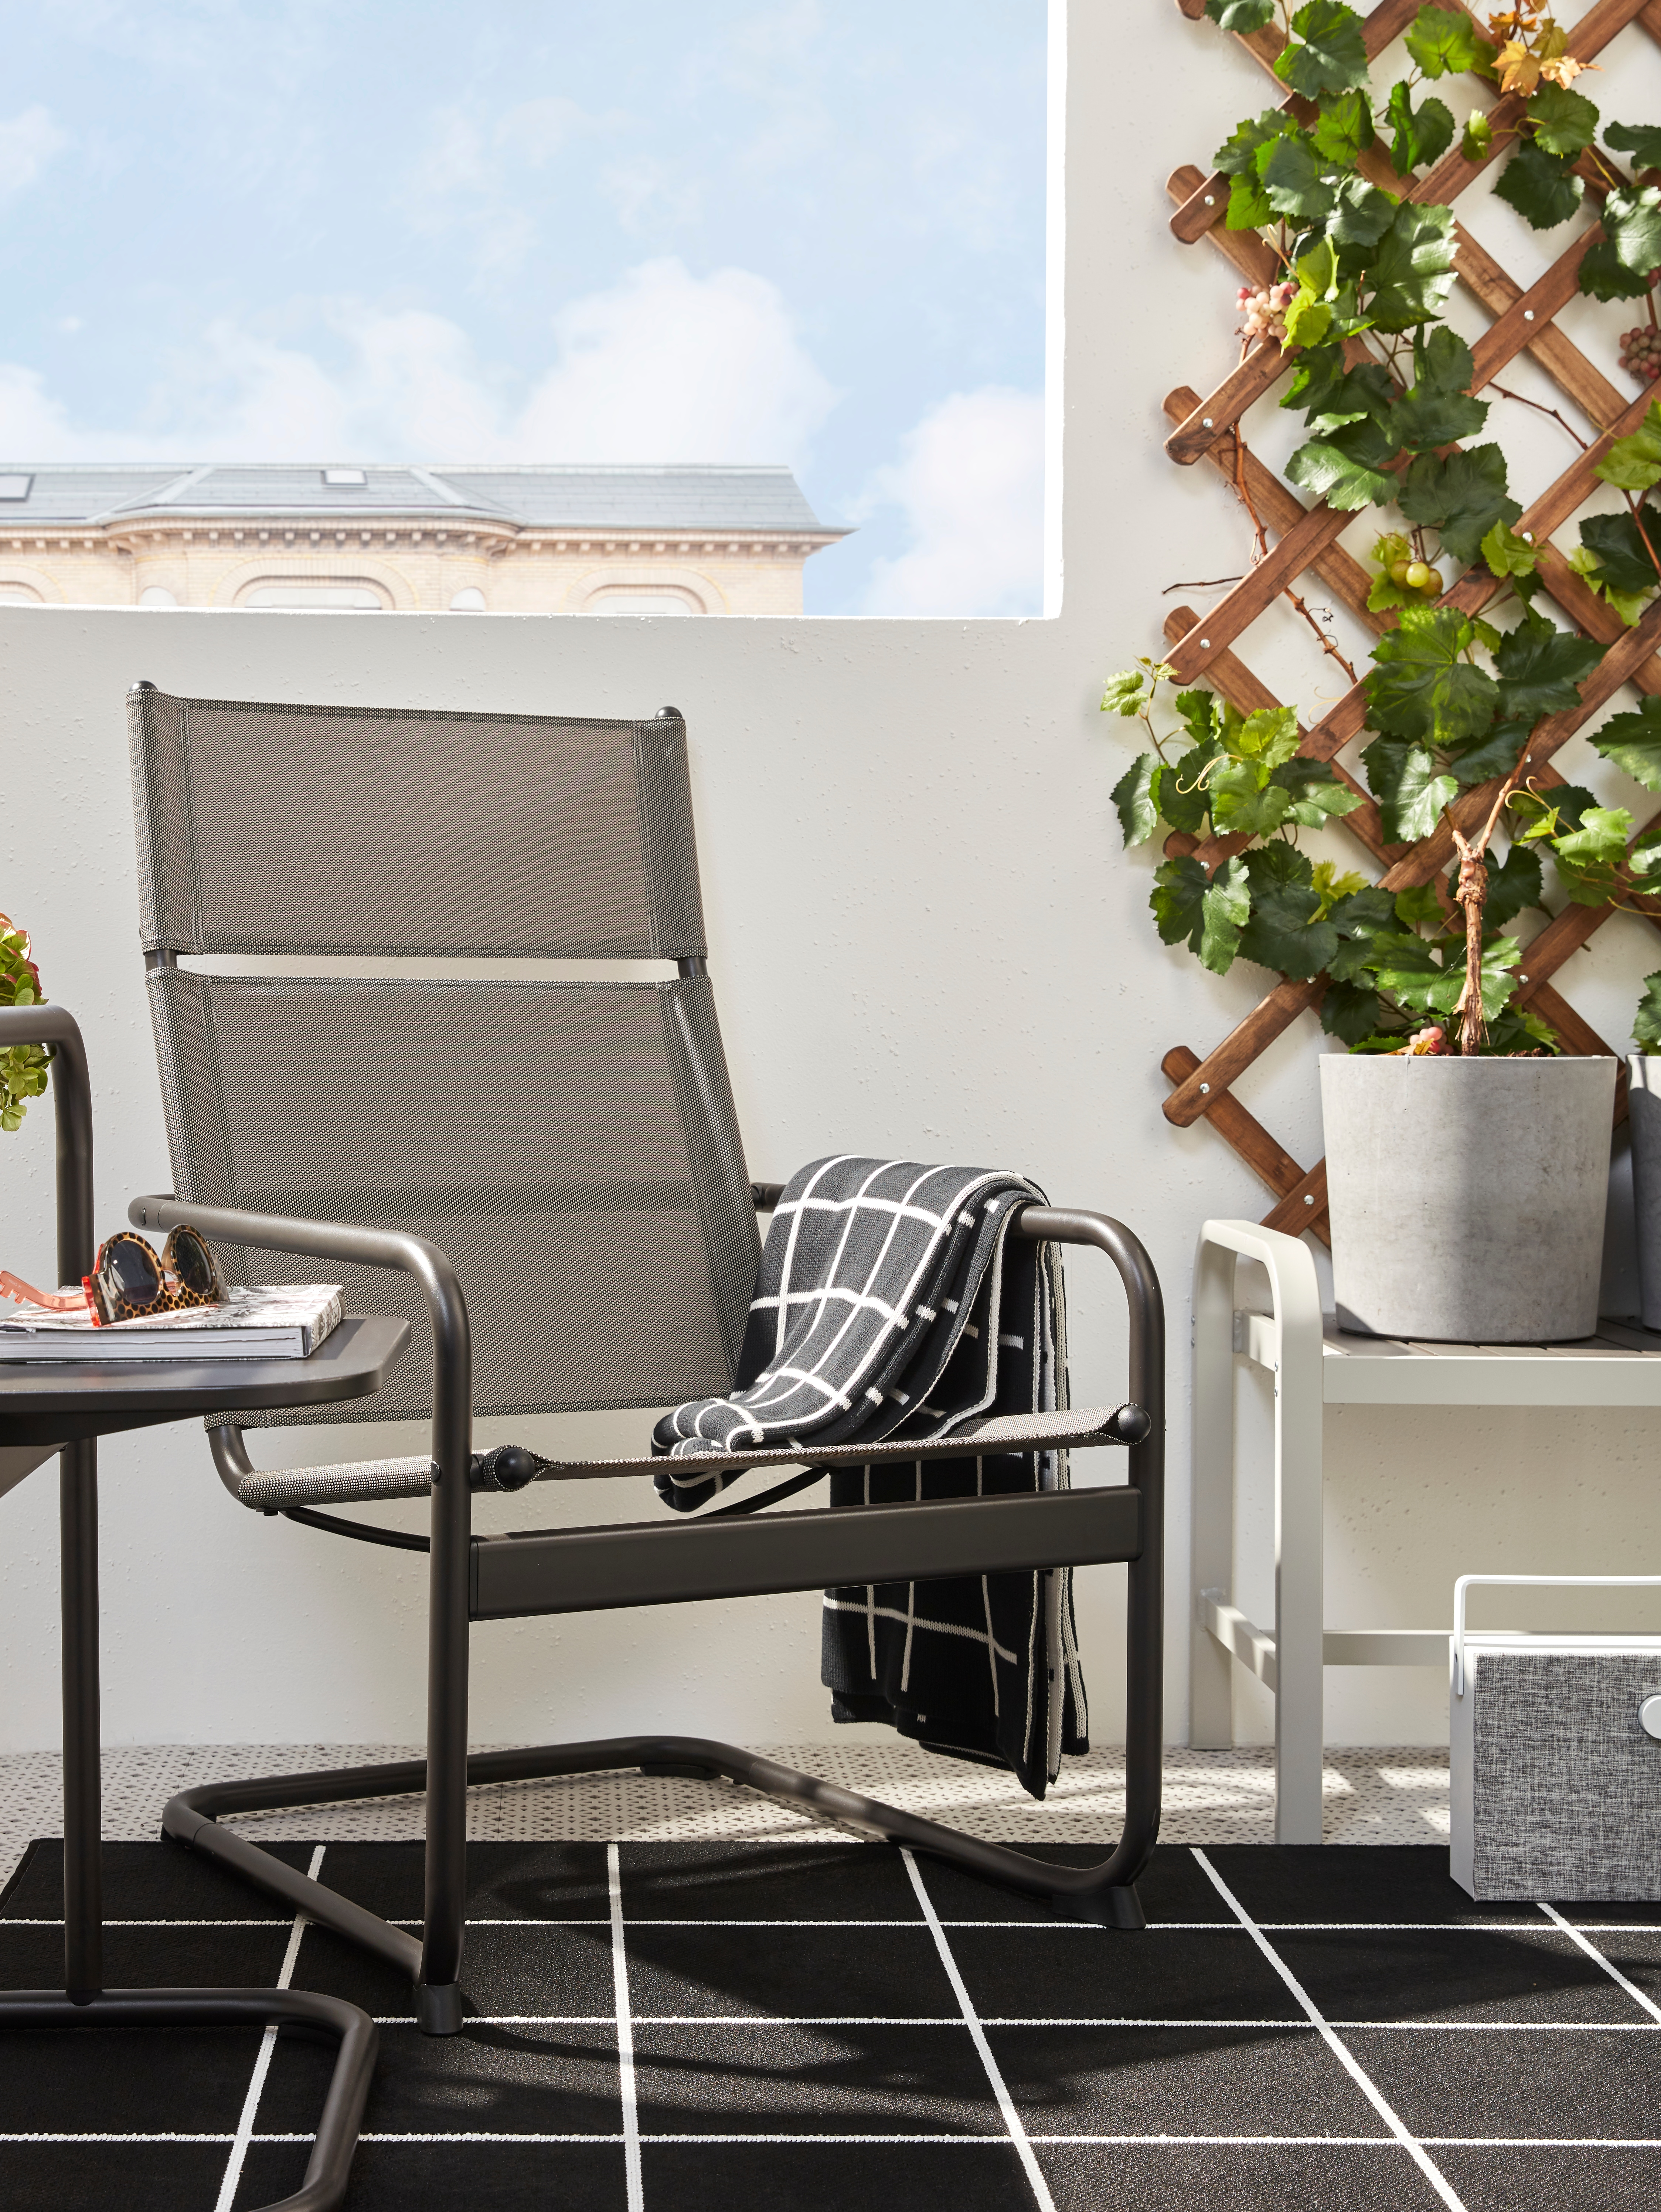 A dark grey, outdoor HUSARÖ armchair is by a matching side table in a balcony corner with a rug and potted plants on a bench.